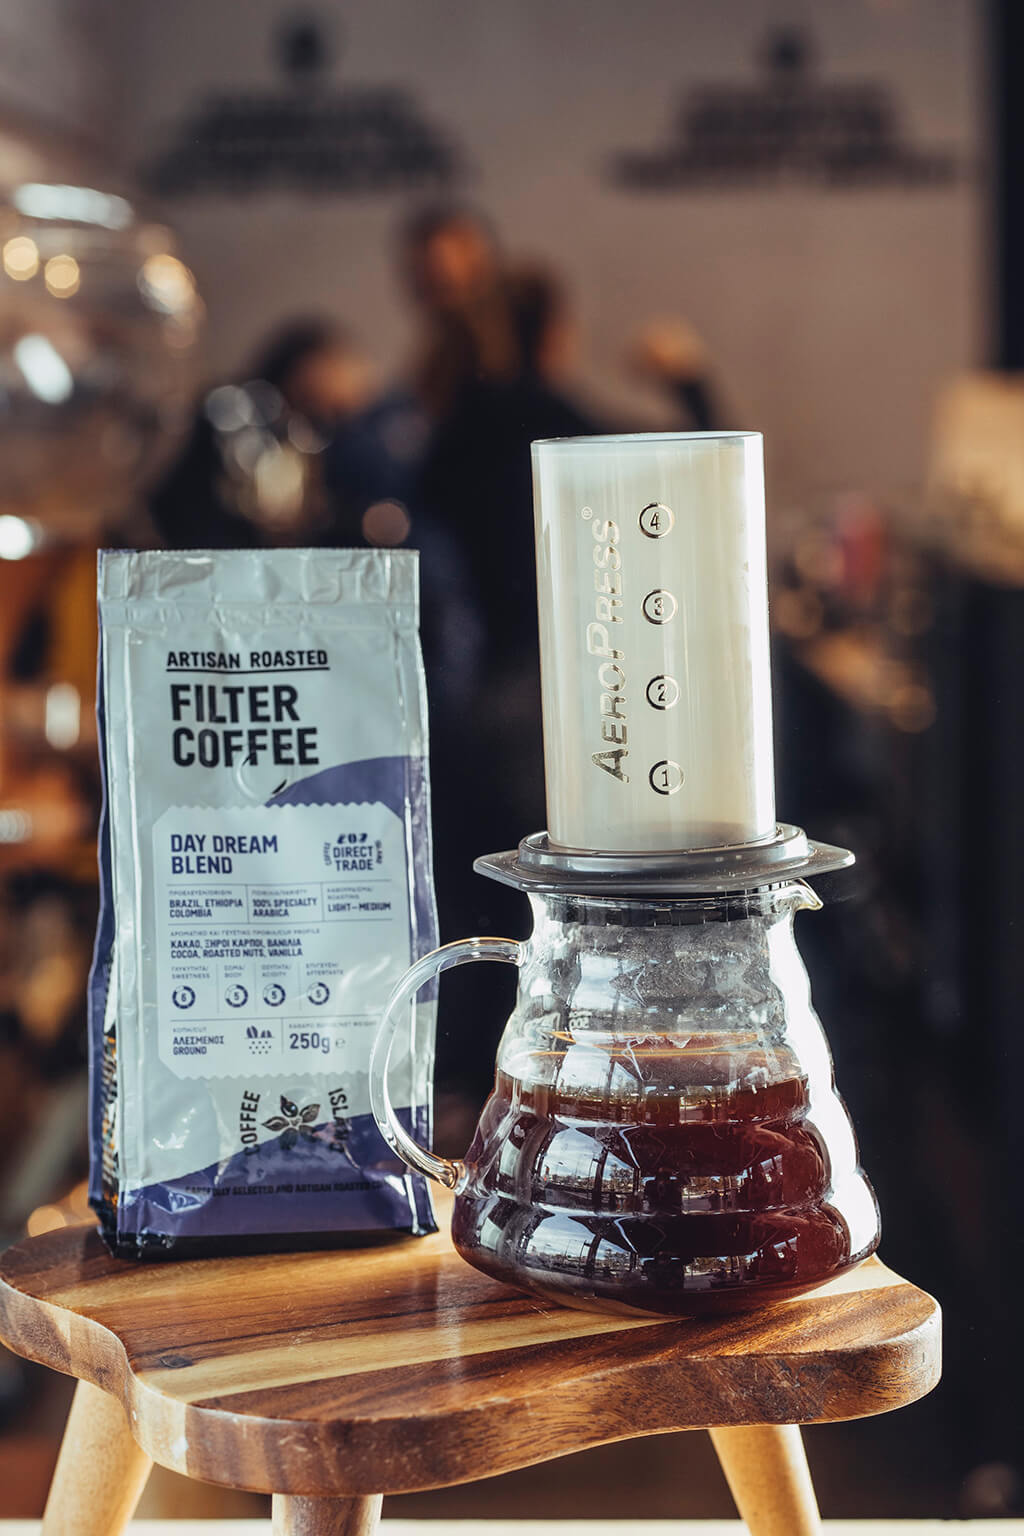 Coffee Island's filter coffee package and aero press